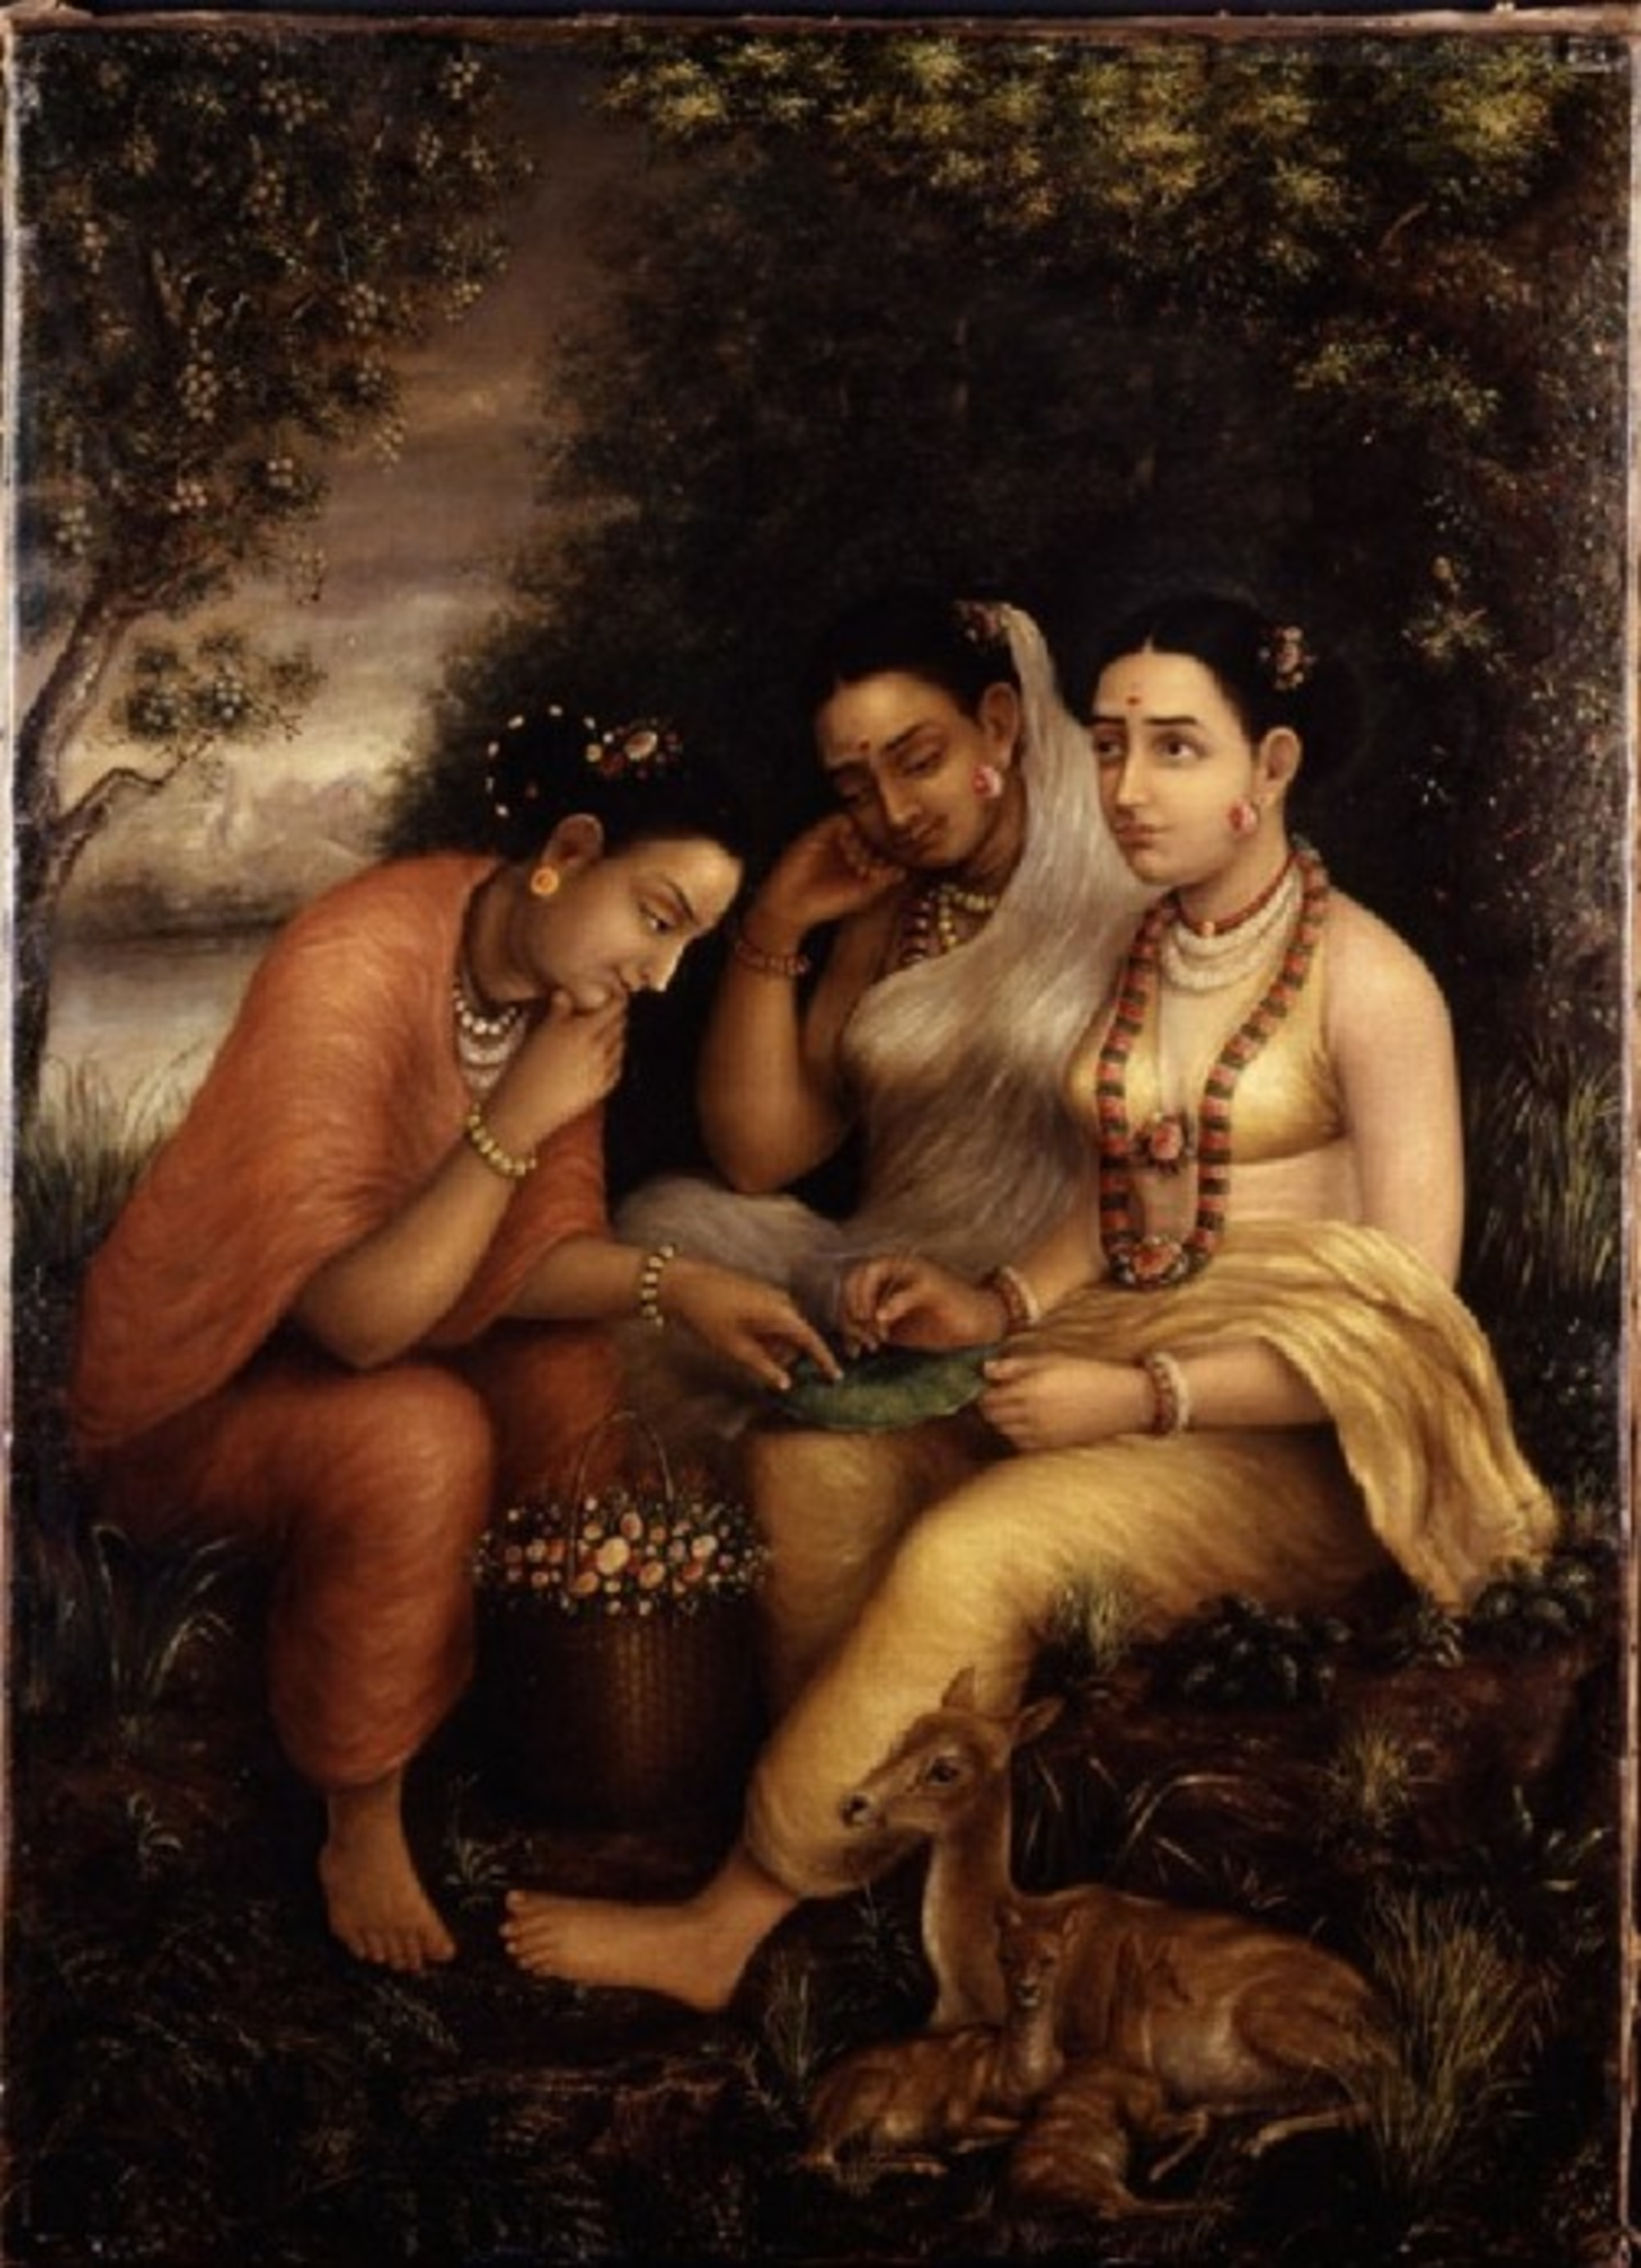 Raja-Ravi-Varma---Shakuntala-writing-a-love-letter-on-a-lotus-leaf.jpg